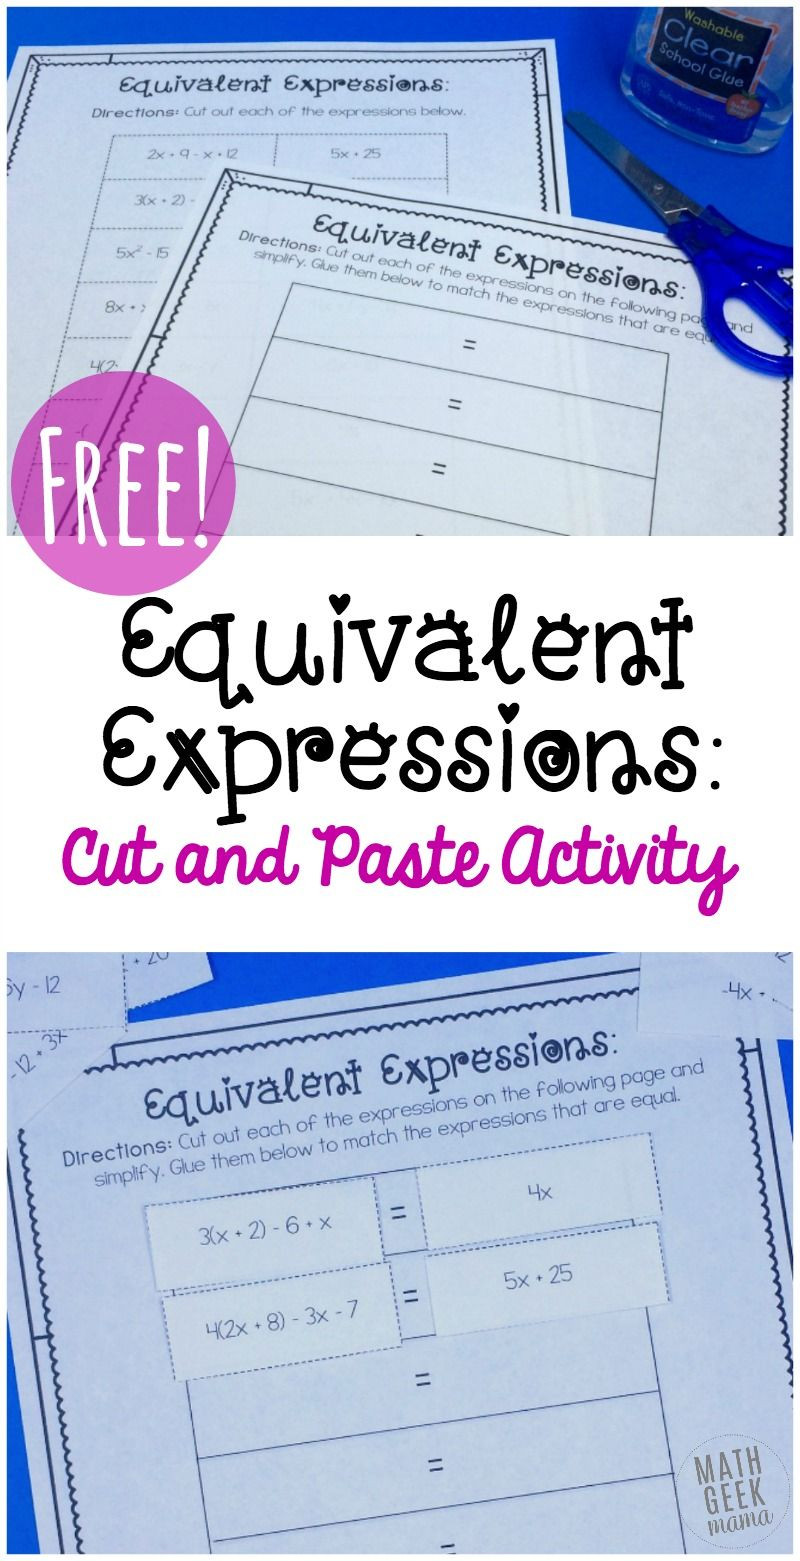 Writing Equivalent Expressions Worksheet Simple Equivalent Expressions Activity Free